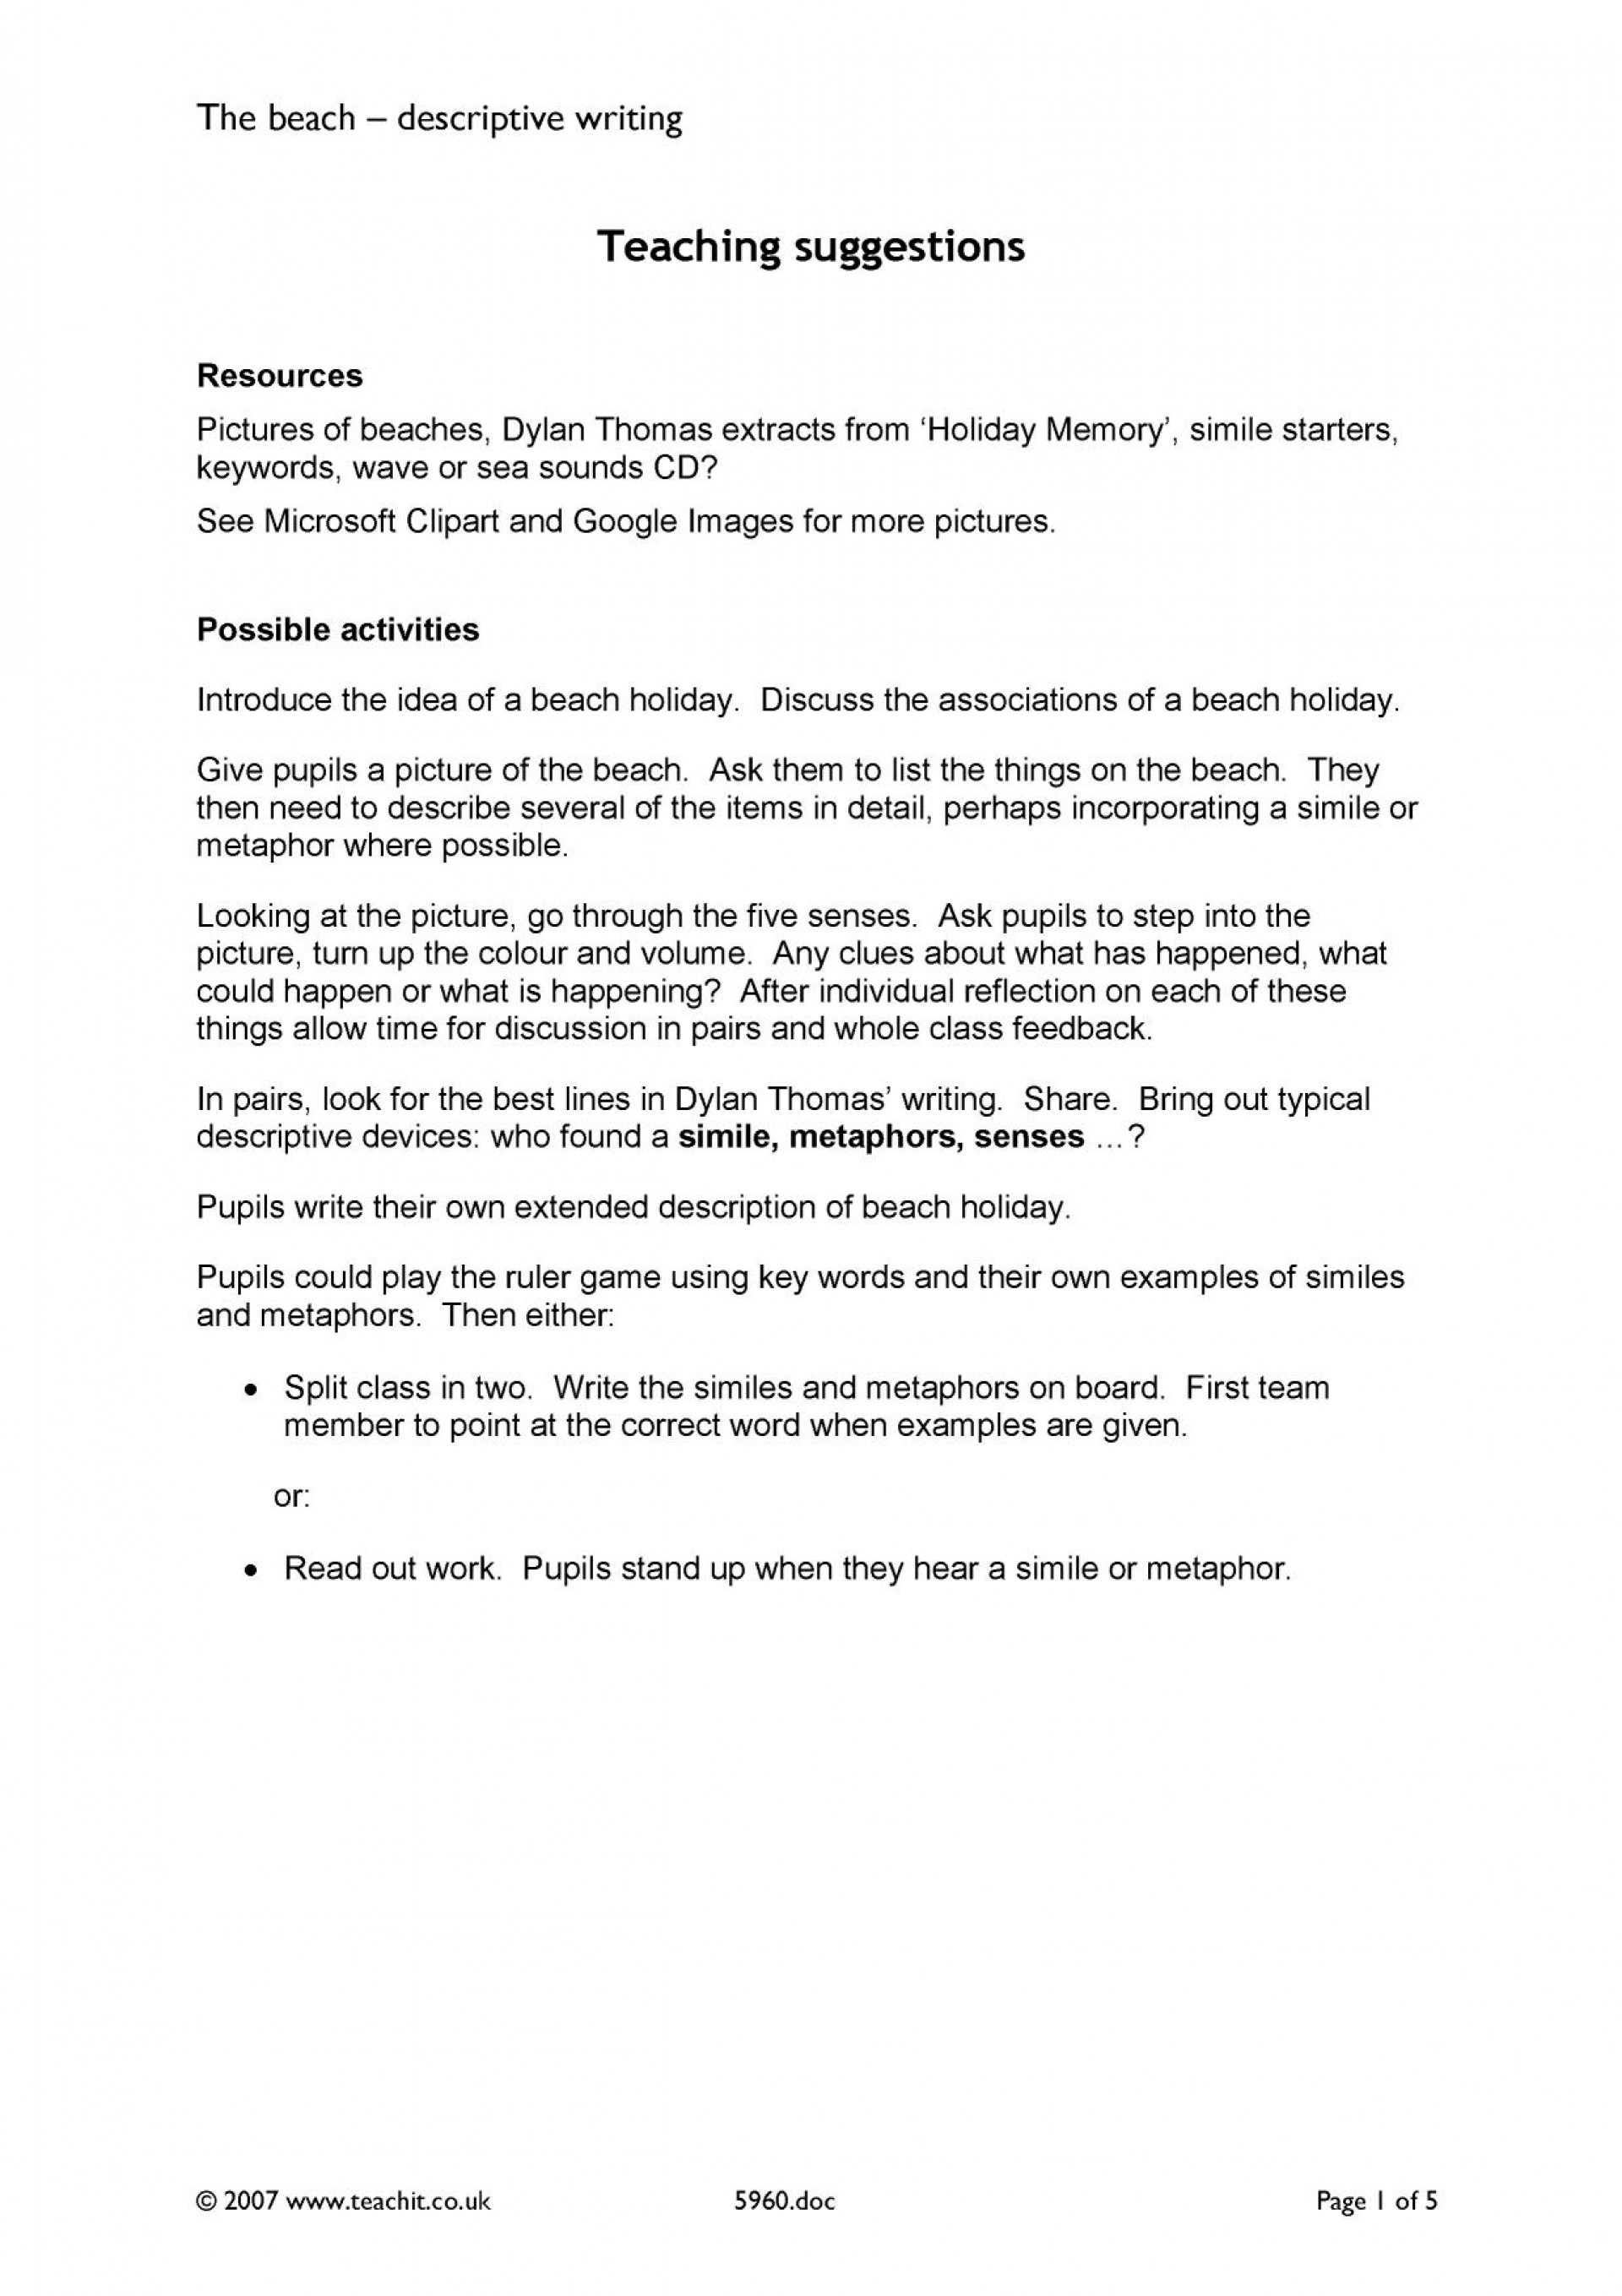 001 Descriptive Essay About The Beach X7229 Php Pagespeed Ic Wgs9dx8iuw Impressive At Night Writing In Summer 1920